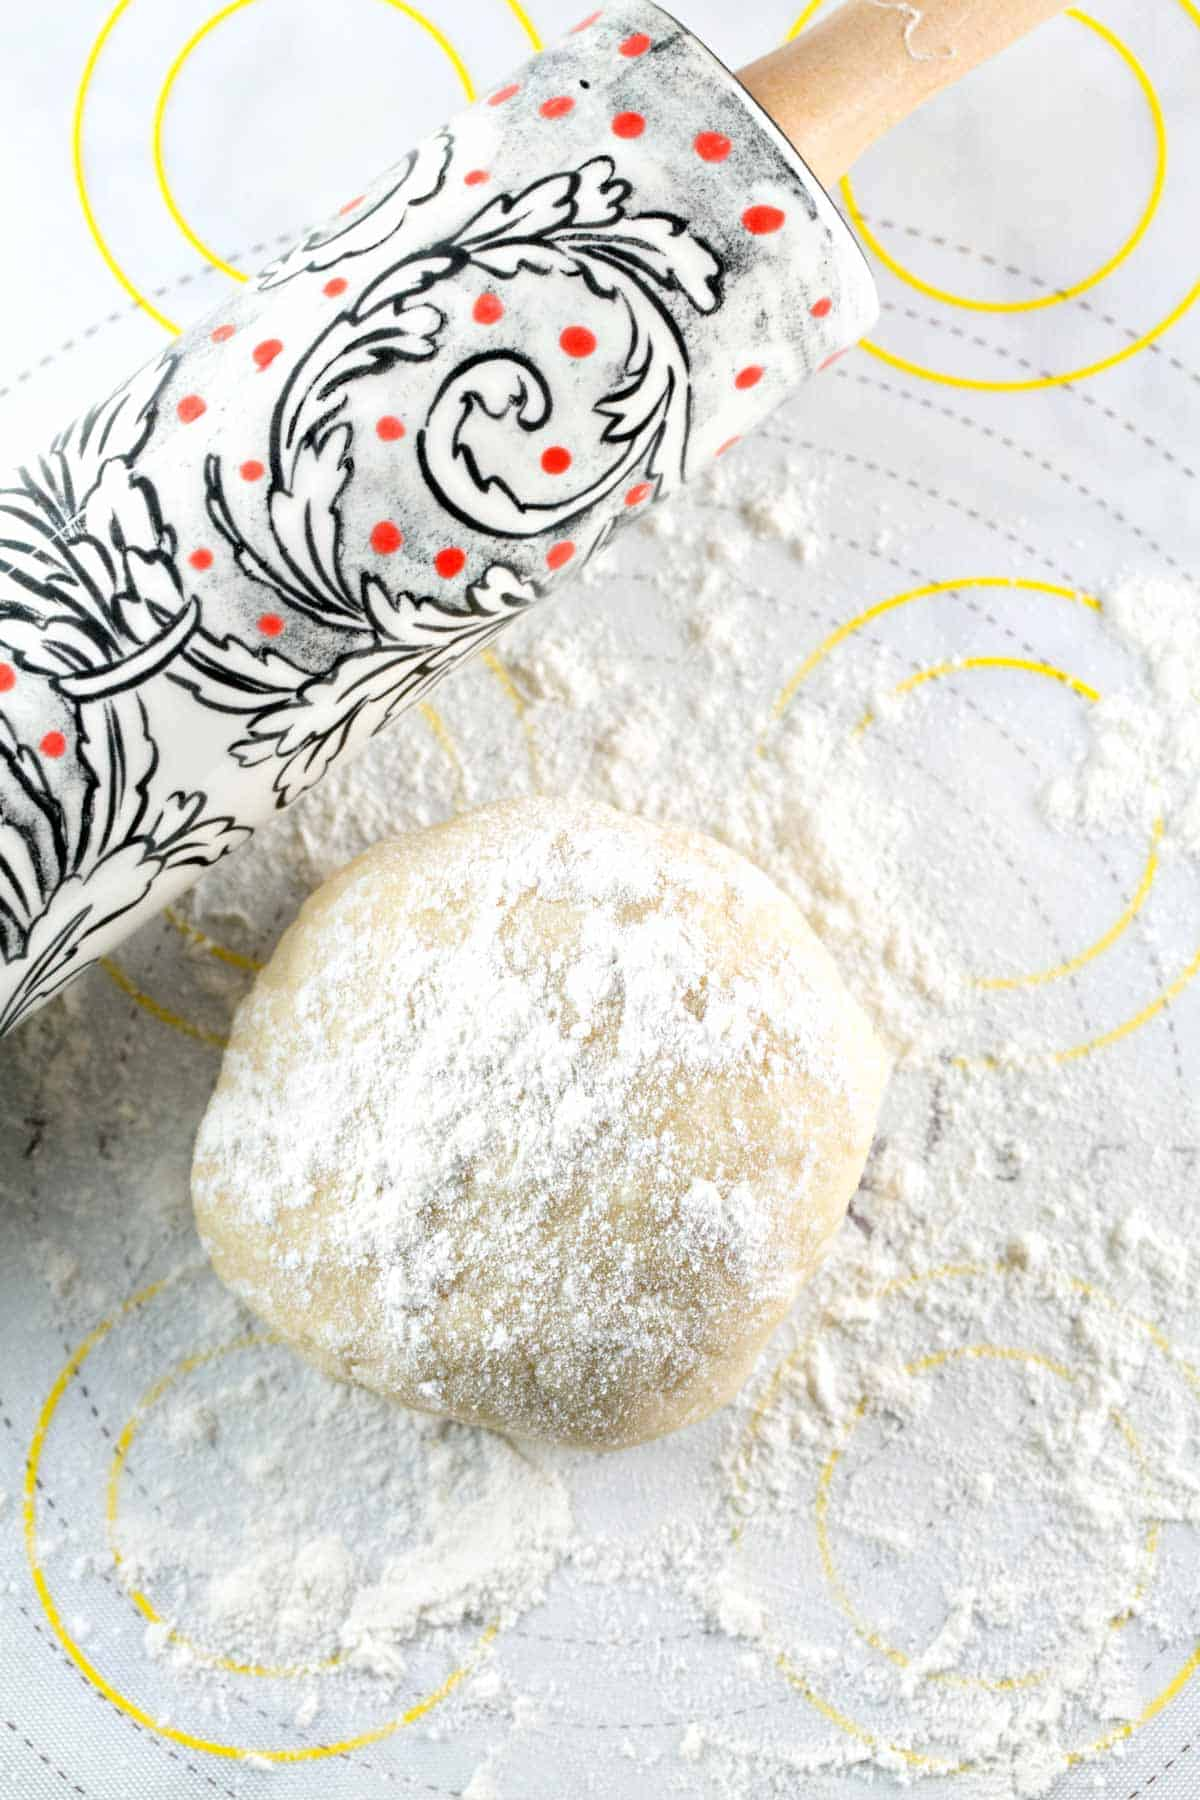 round ball of pie crust dough dusted with flour next to a decorative rolling pin